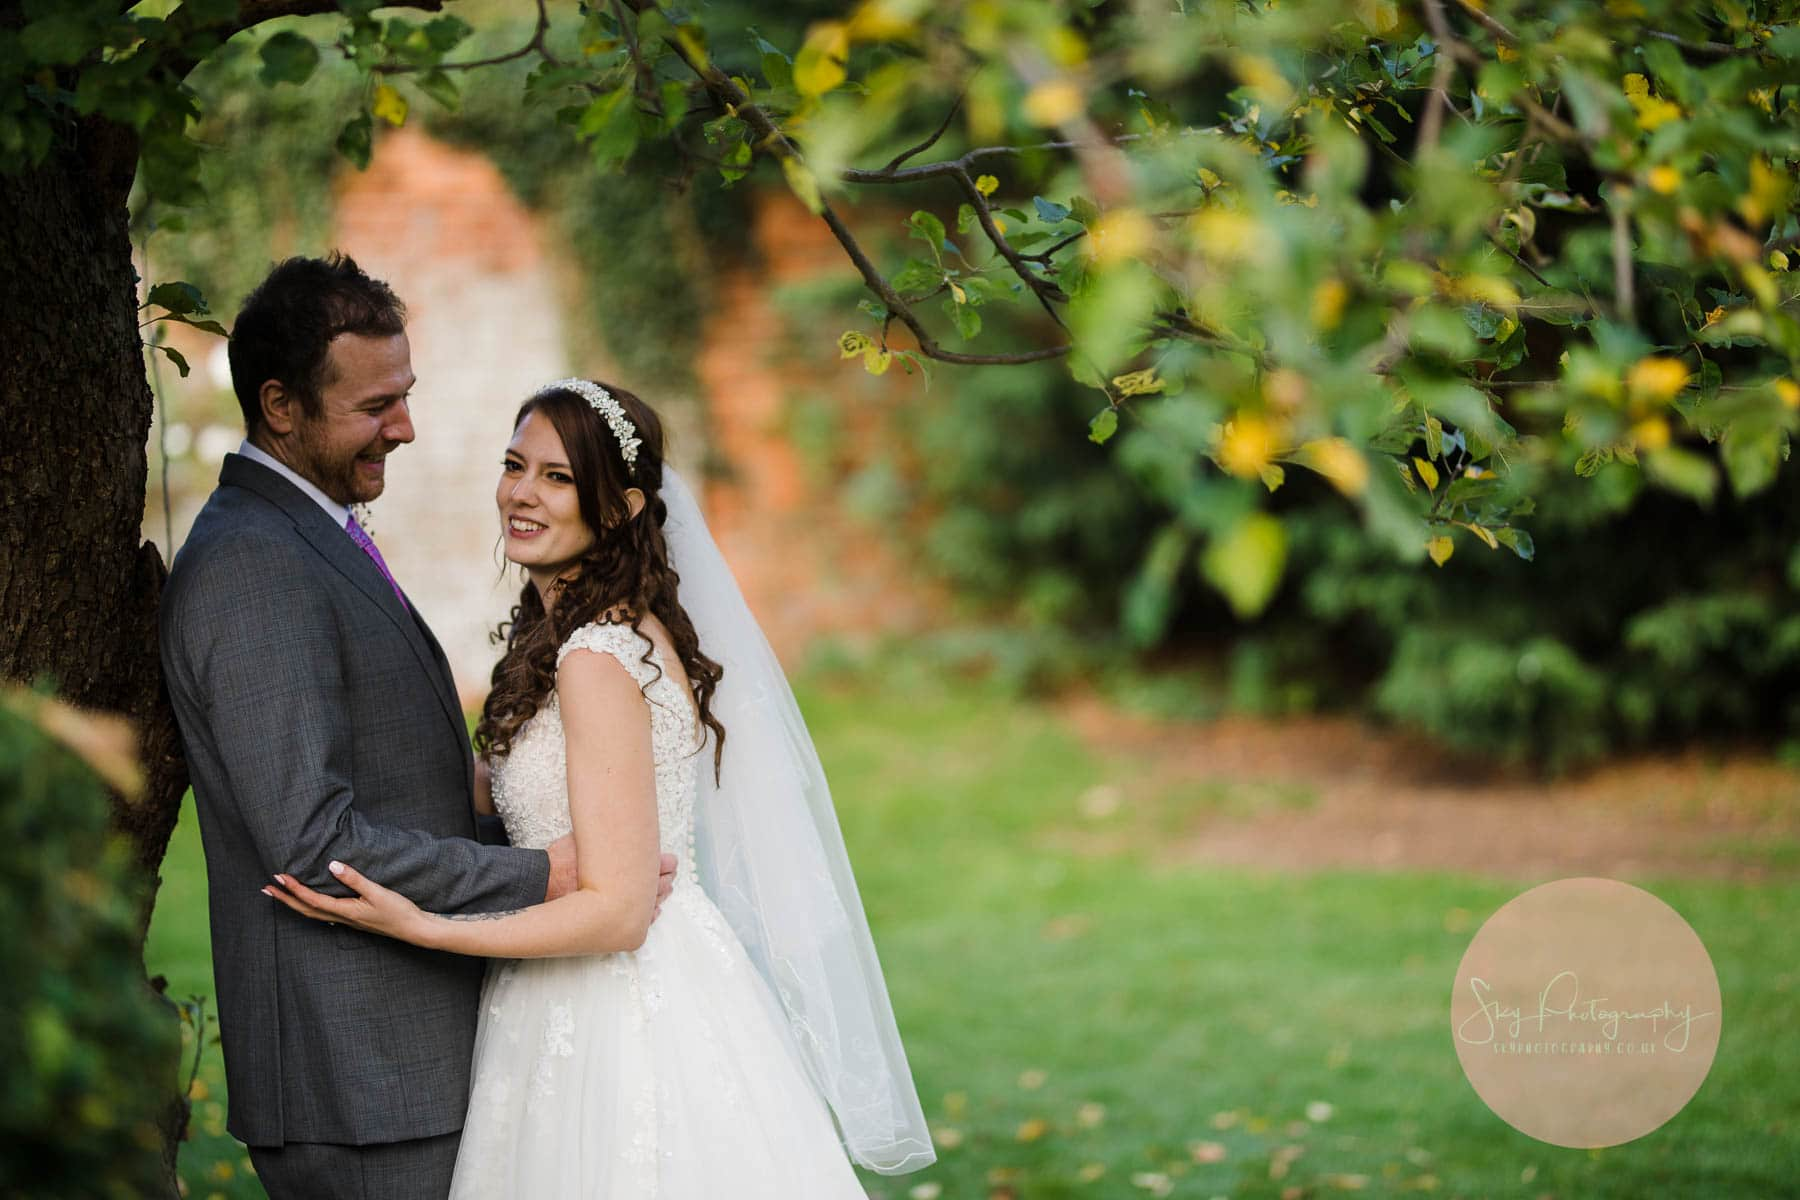 Couple standing under a tree in the grounds of the venue